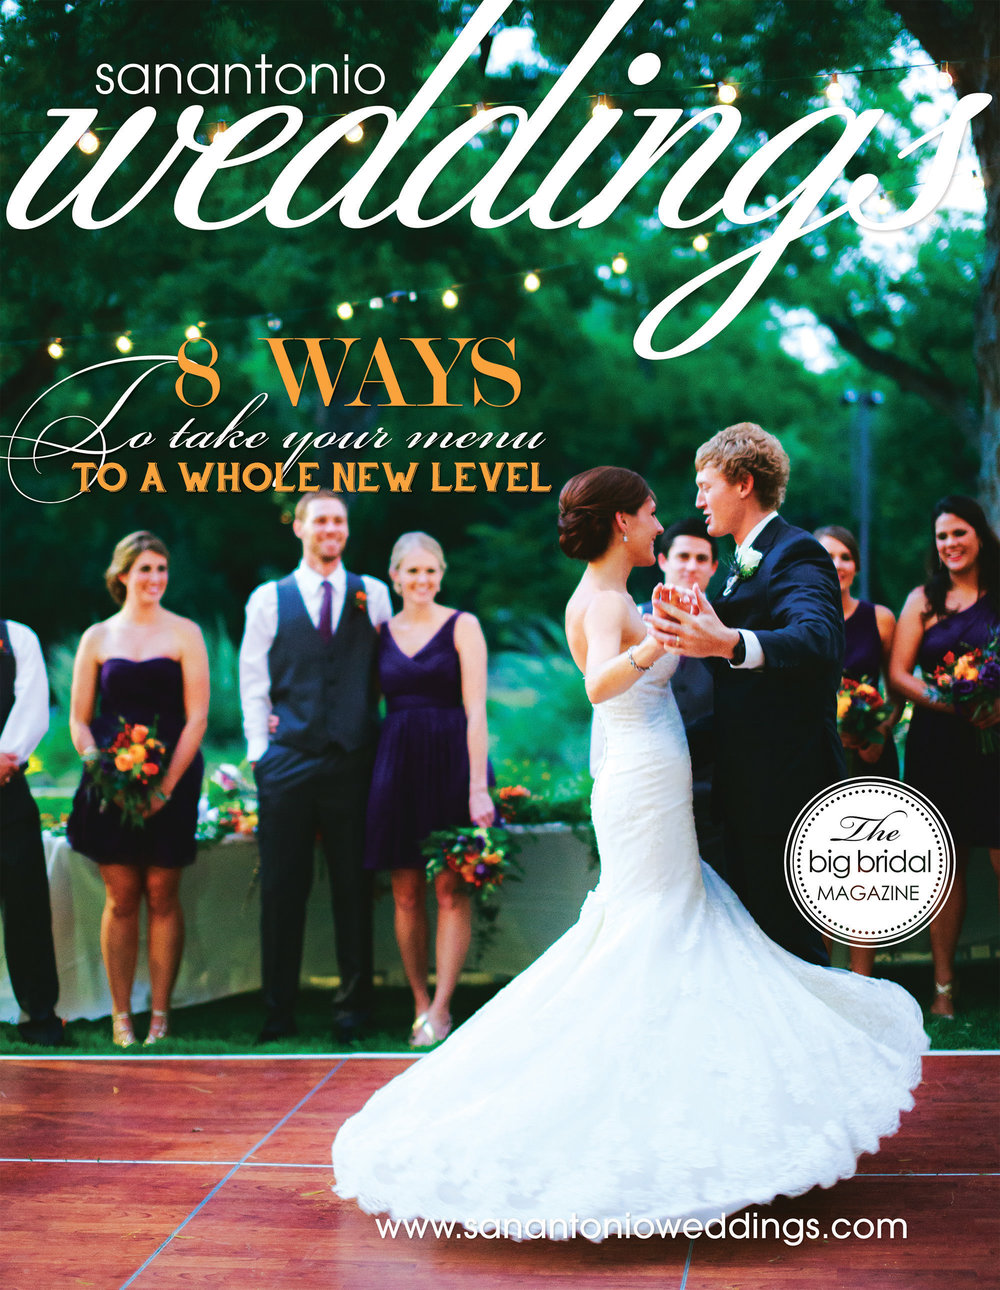 San Antonio Weddings Magazine Cover  (2015, Pamela & Taylor Dreiss)